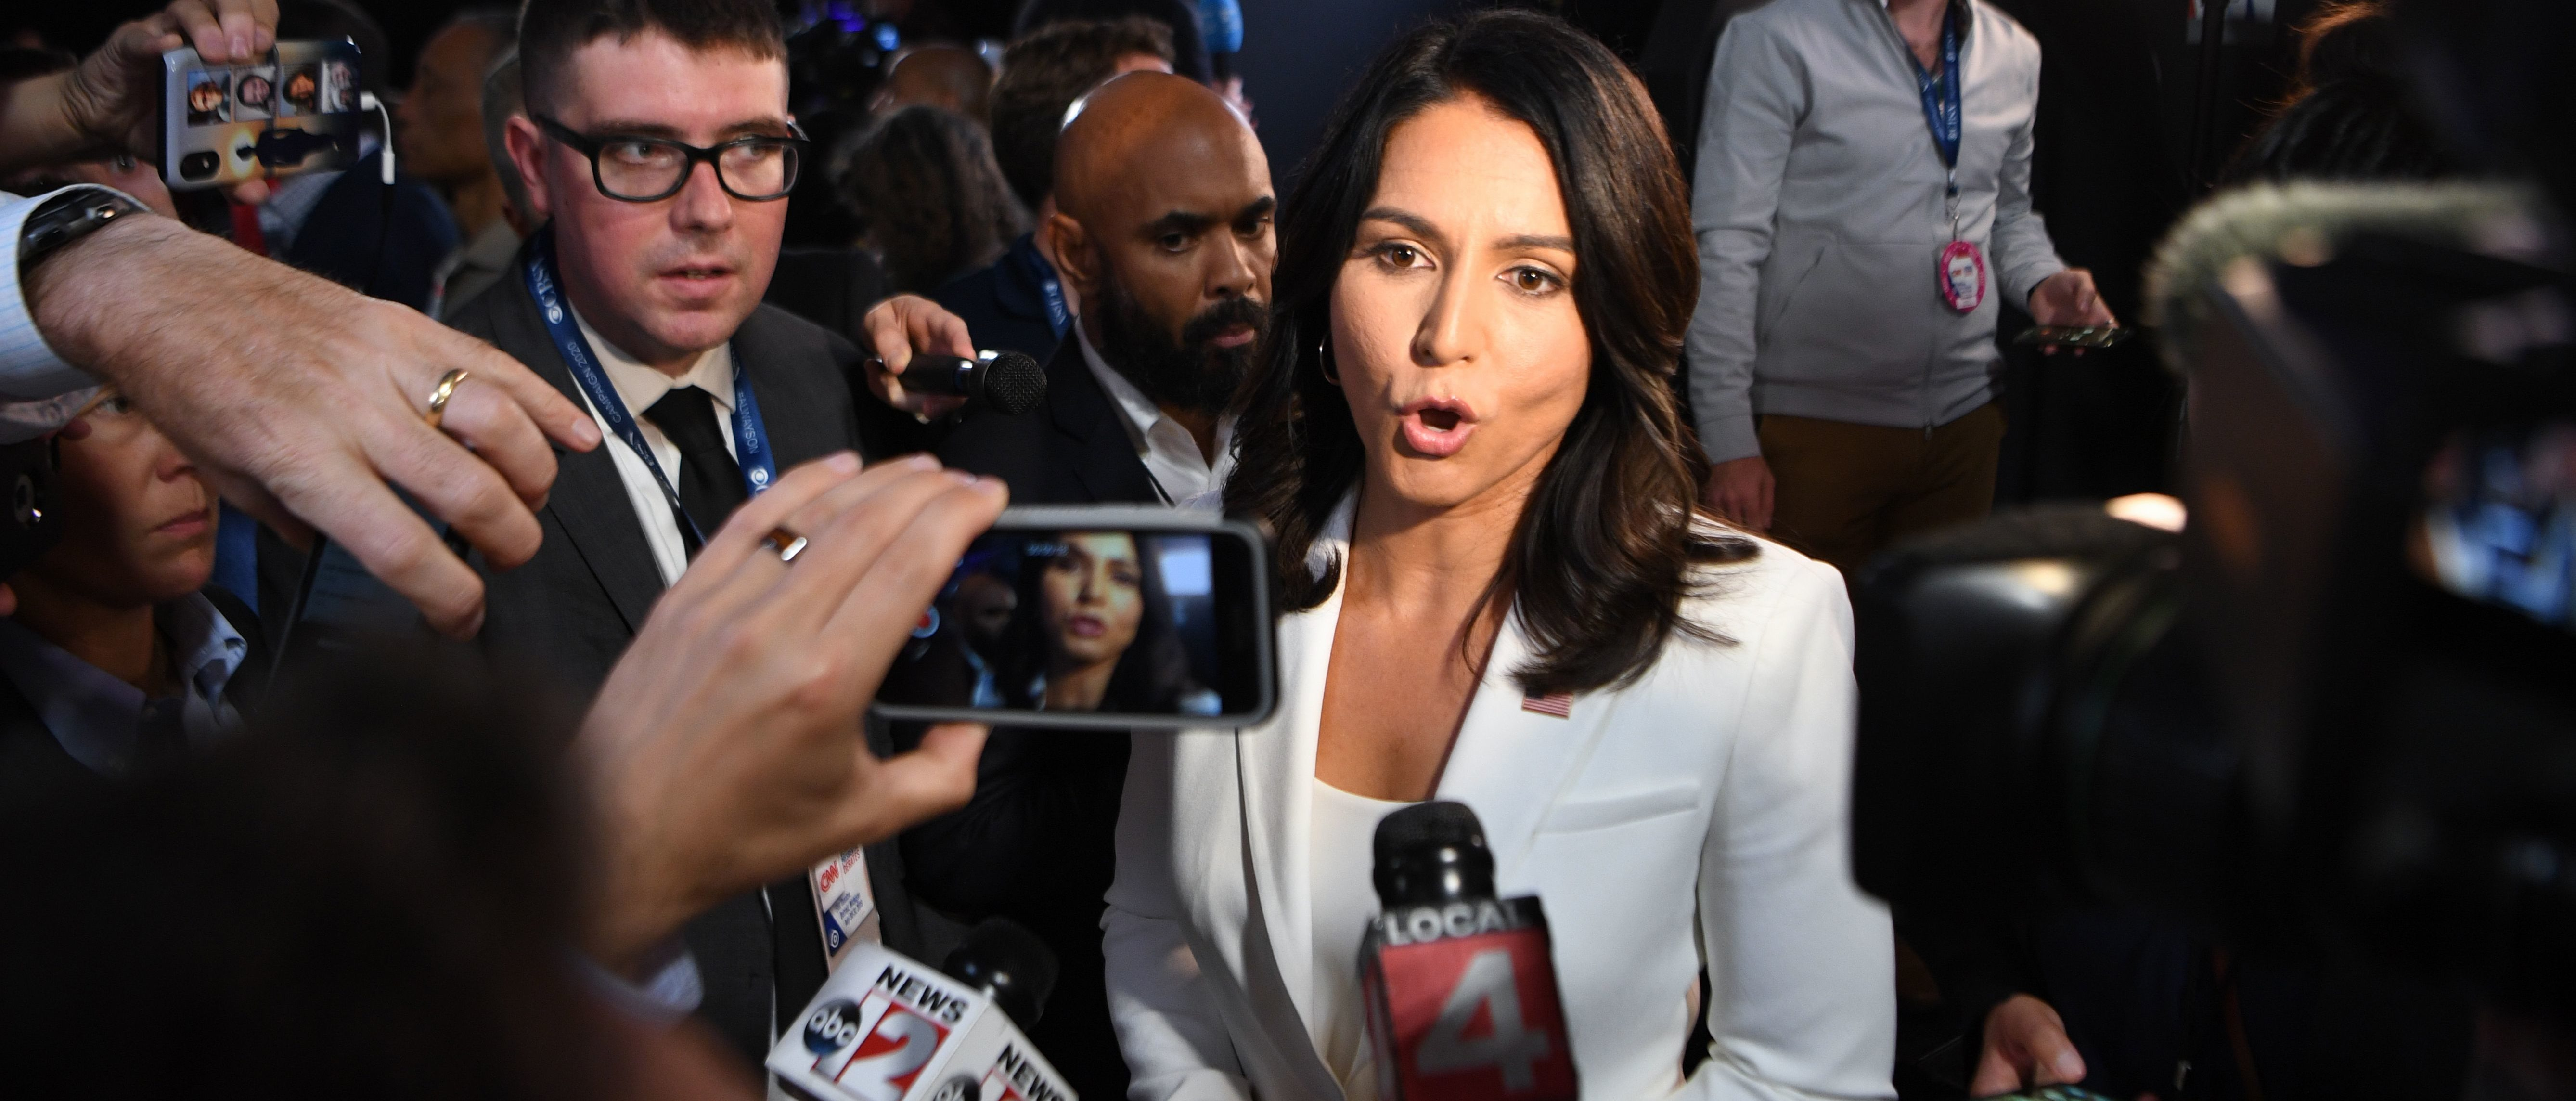 Here Are The Democrats Who Have Defended Tulsi Gabbard Following Hillary's Russian Barbs